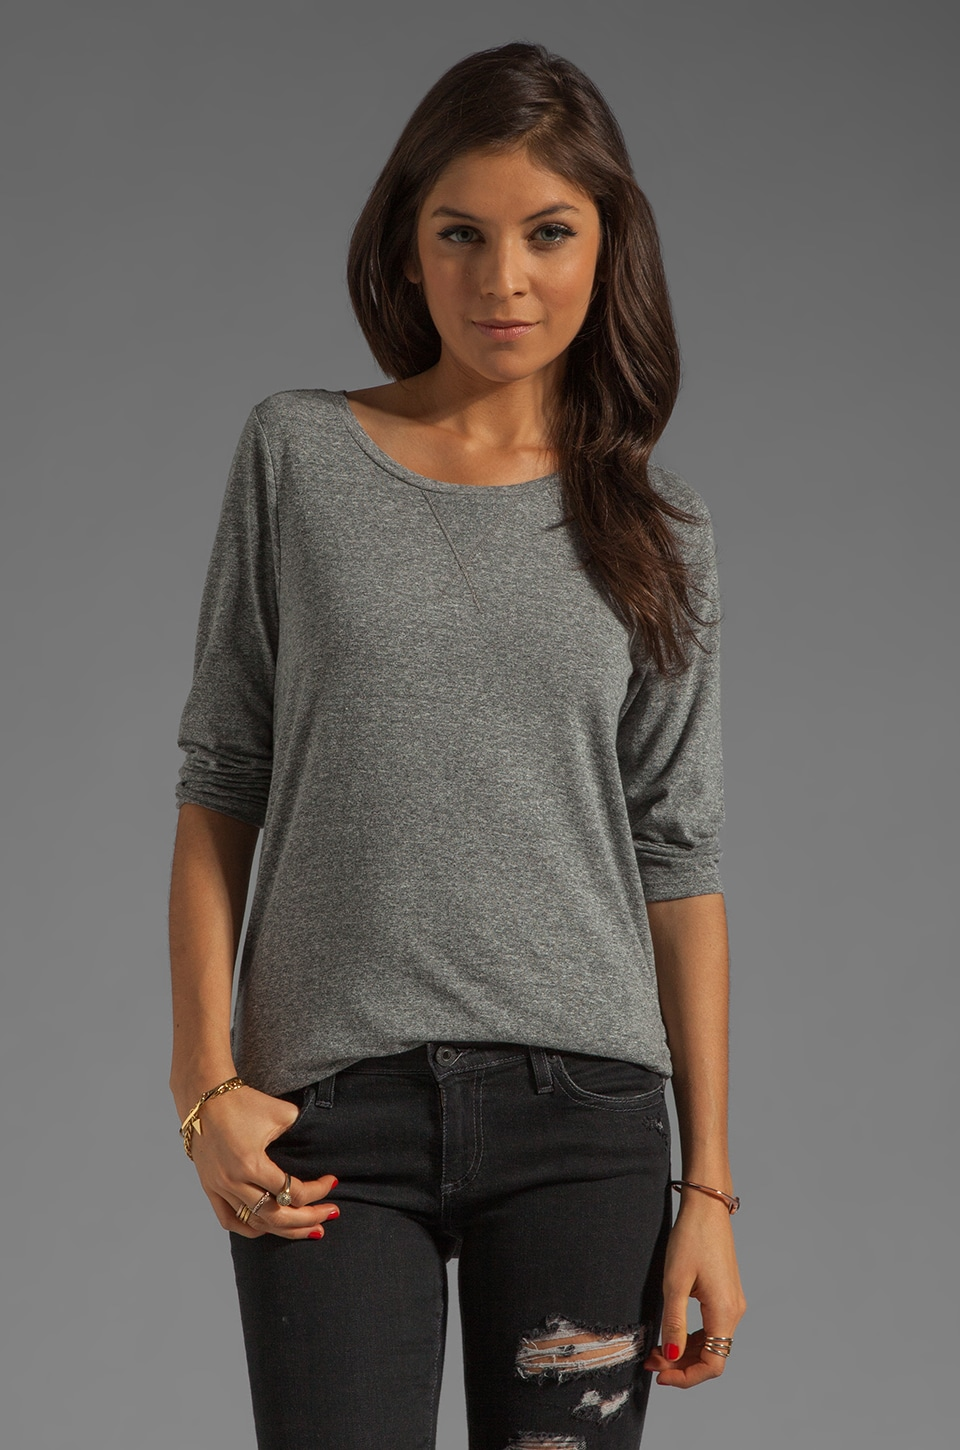 AG Adriano Goldschmied 3/4 Sleeve Scoop Neck in Light Heather Grey